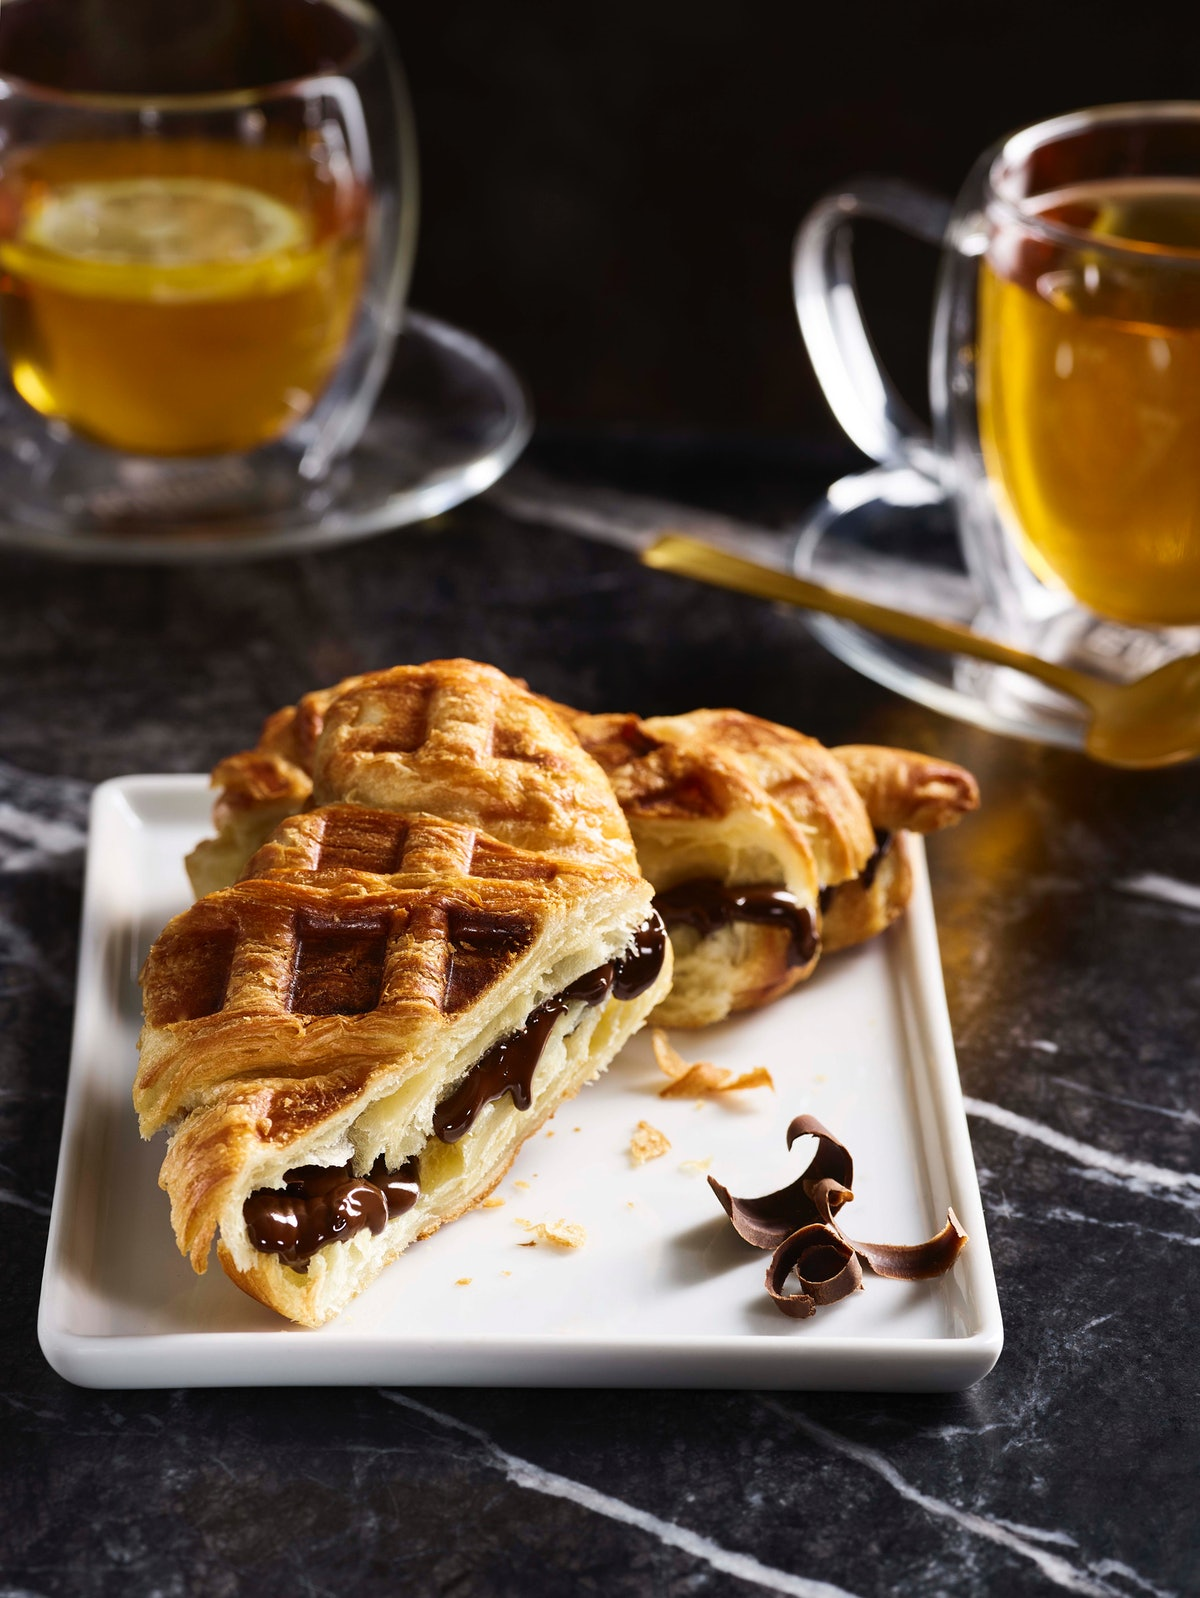 Godiva's Croiffle, A Croissant & Waffle Hybrid, Just Achieved Full Breakfast Potential